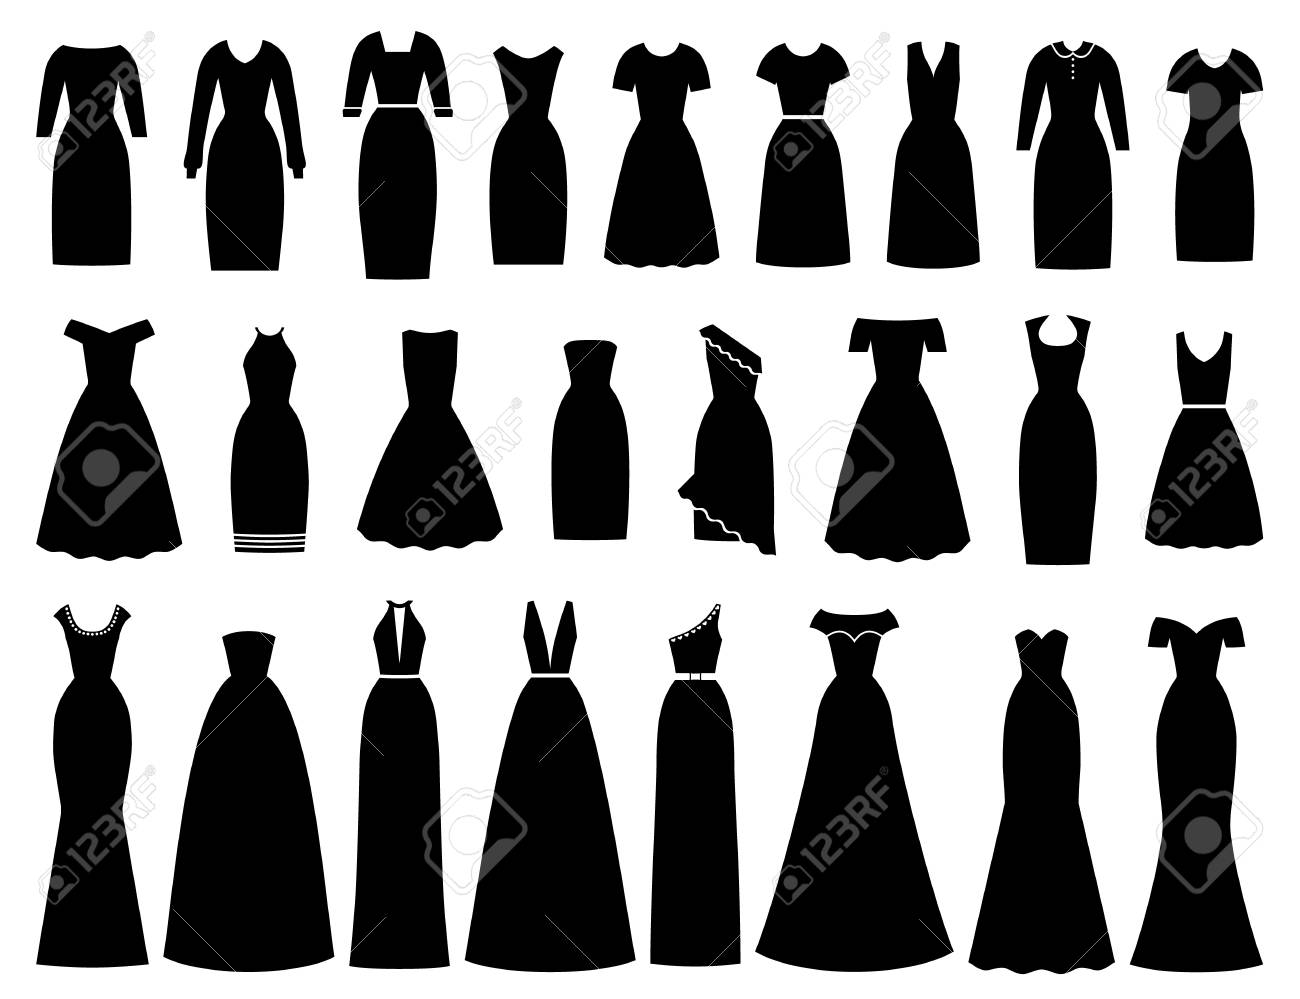 Dress icon for women. Vector. Evening, cocktail, business dresses. Black silhouette apparel set isolated. Collection girl clothing. Female textile garment on white background Illustration, flat design - 121941943